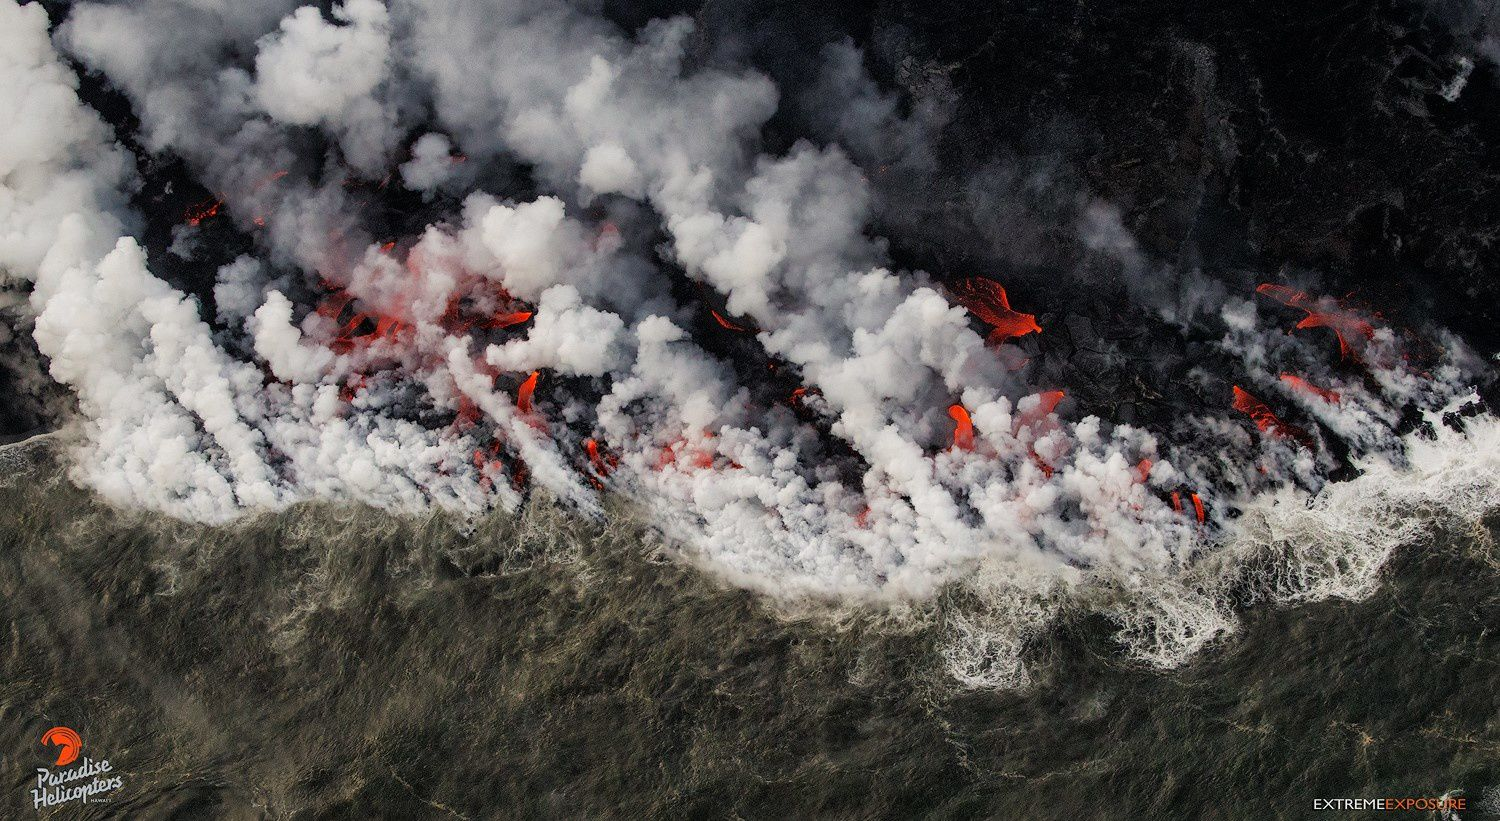 Kilauea East Rift Zone - Entry into the Ocean at Kapoho: Many lava fingers and incandescent points - Photo Bruce Omori / Paradise helicopters 12.06.2018 / 5h45